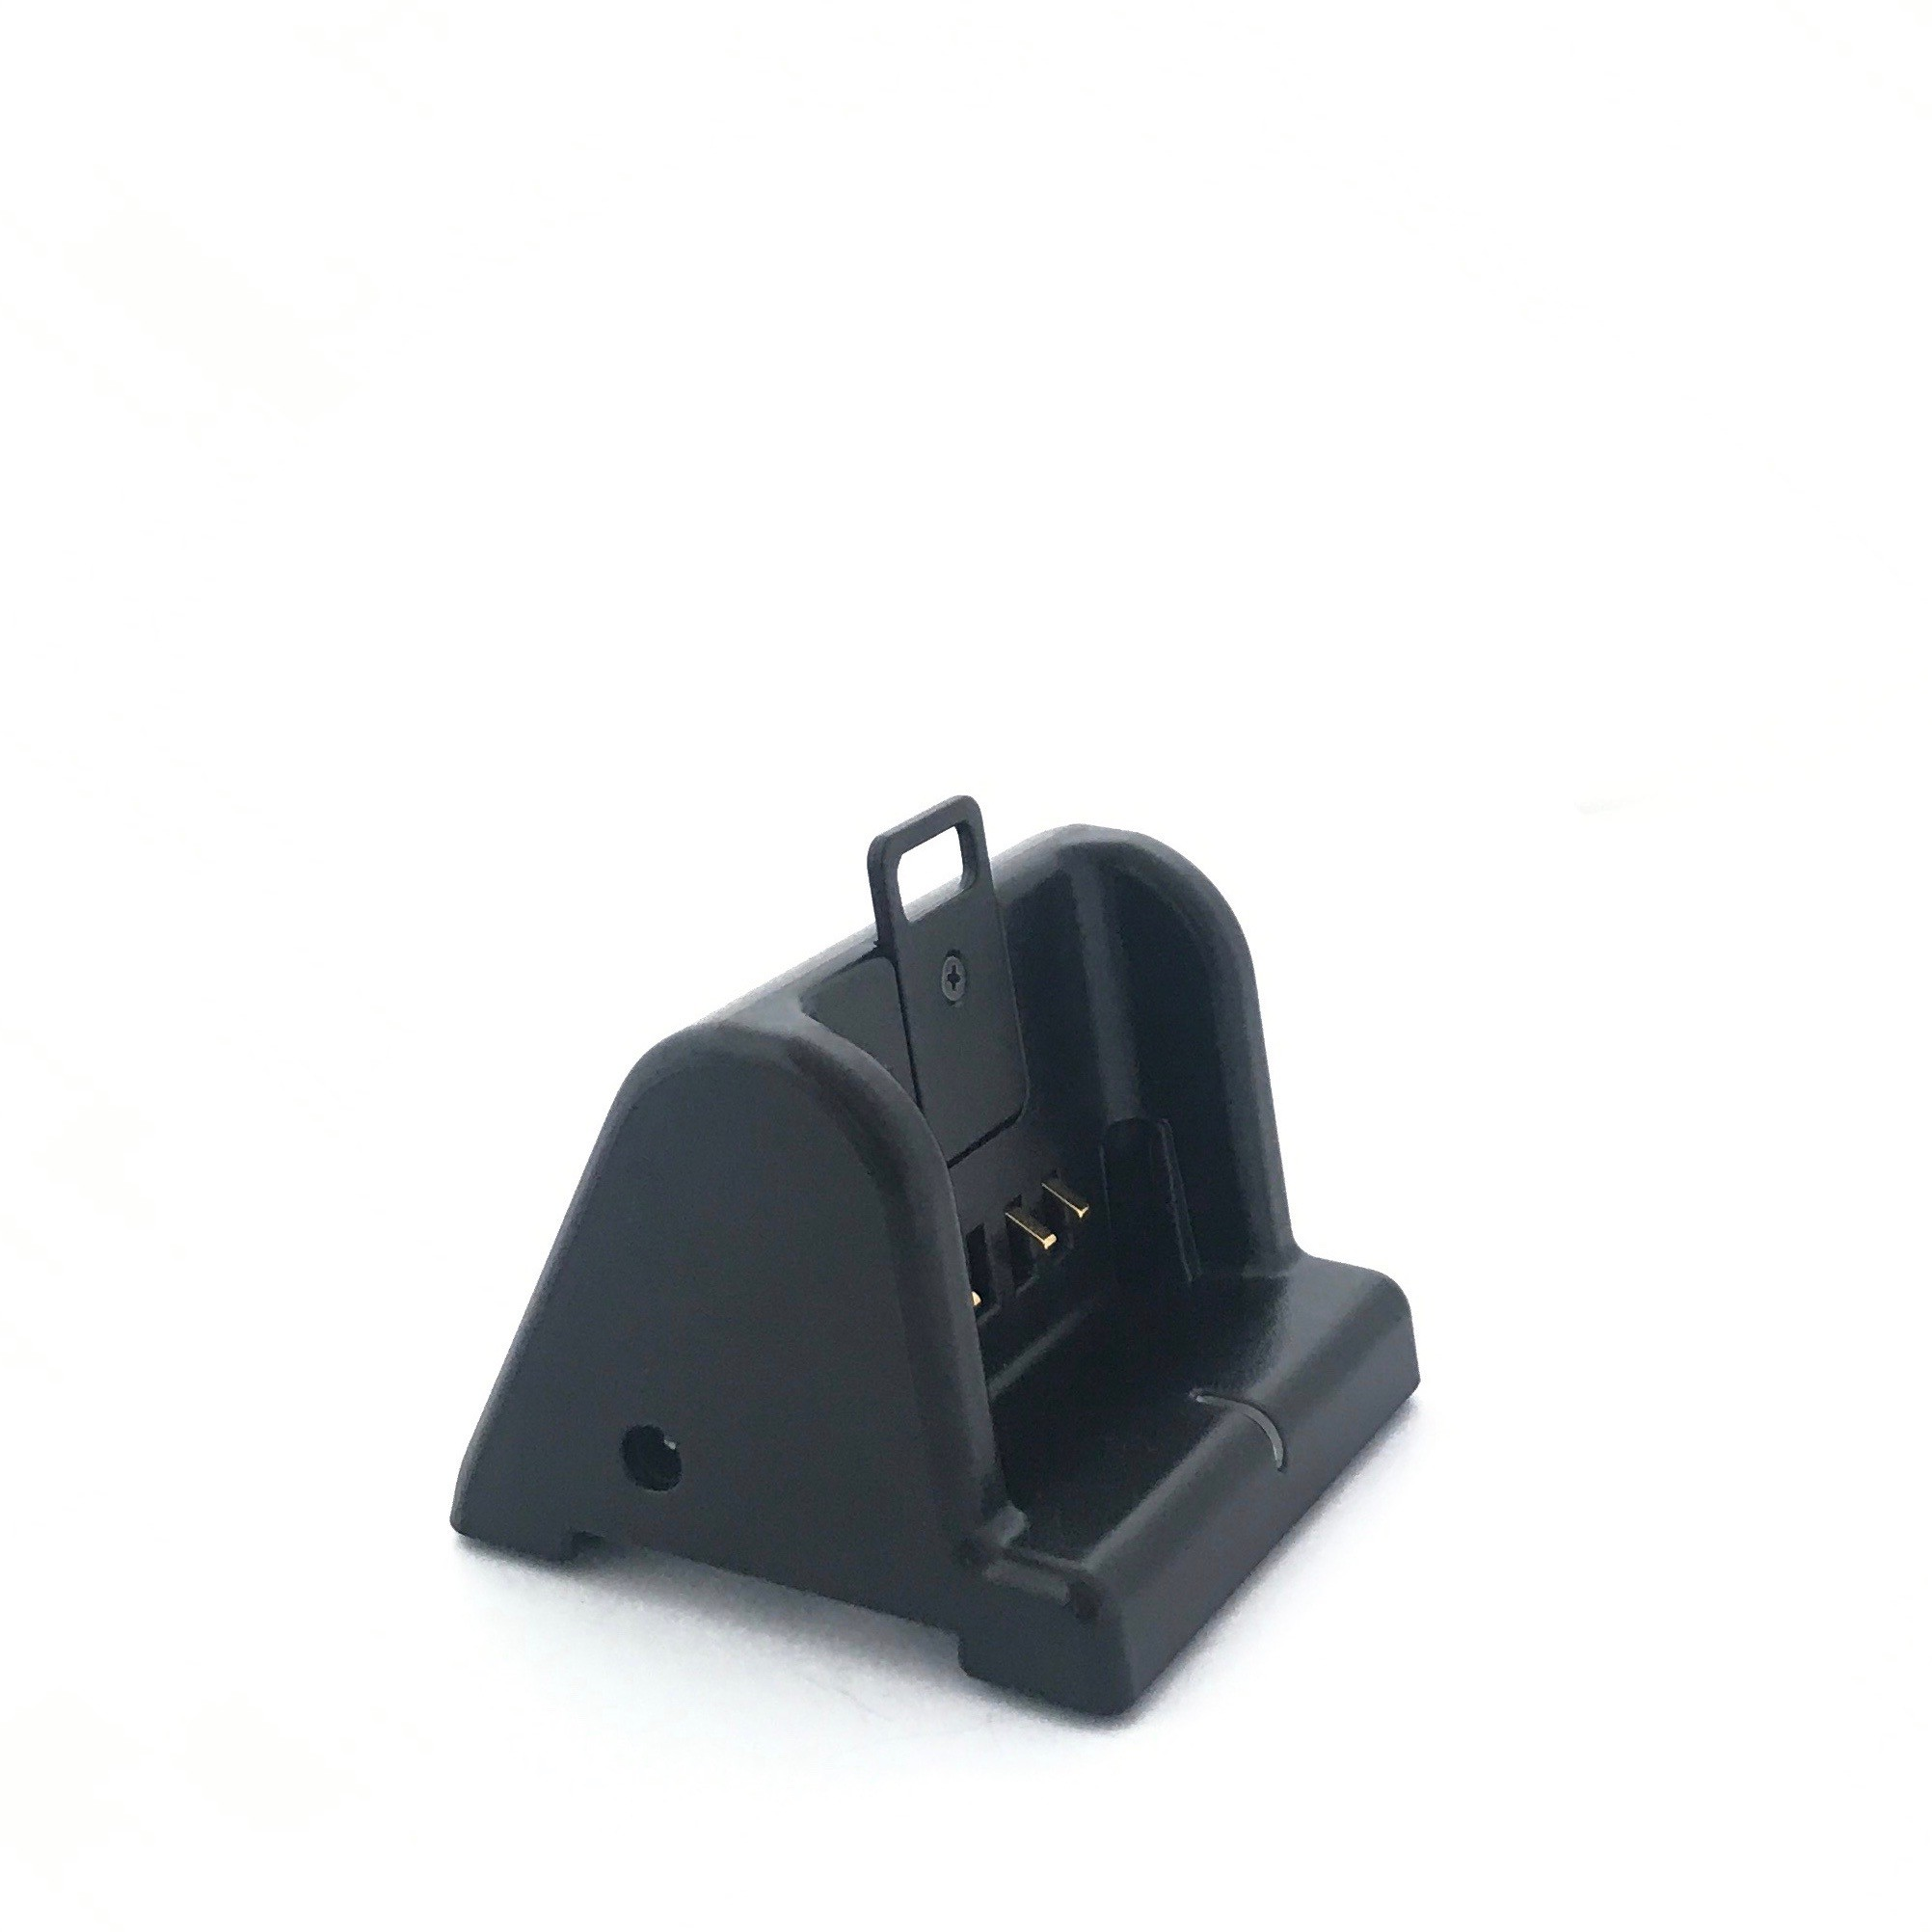 BATTERY DOCKING STATION FOR THOR 1 (TP9000EX)